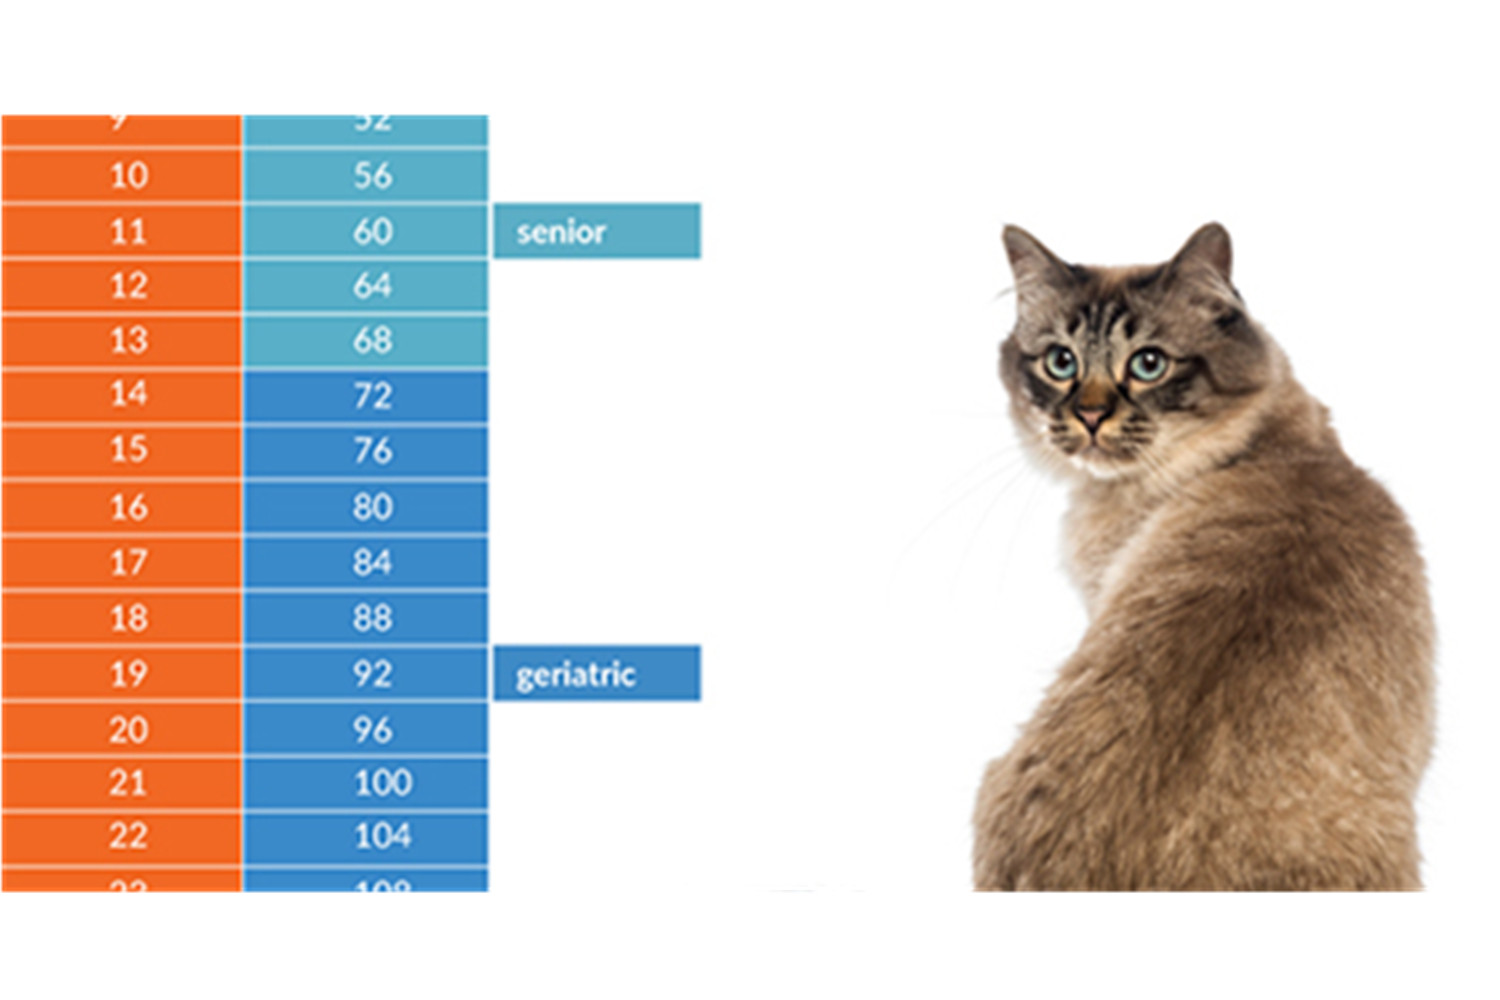 How To Tell A Cat's Age